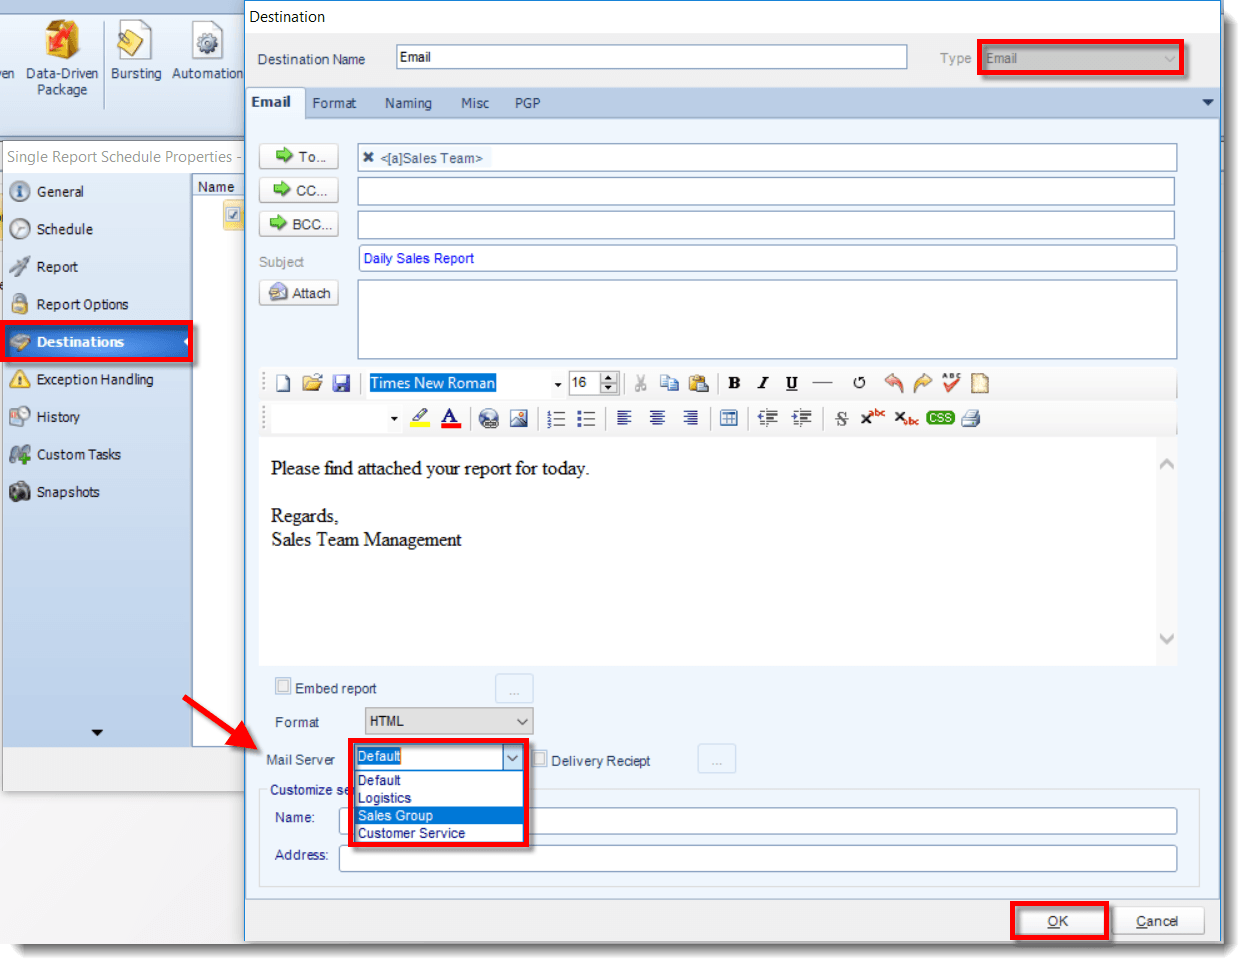 How to Email Crystal Reports From Multiple Email Accounts - Step 4